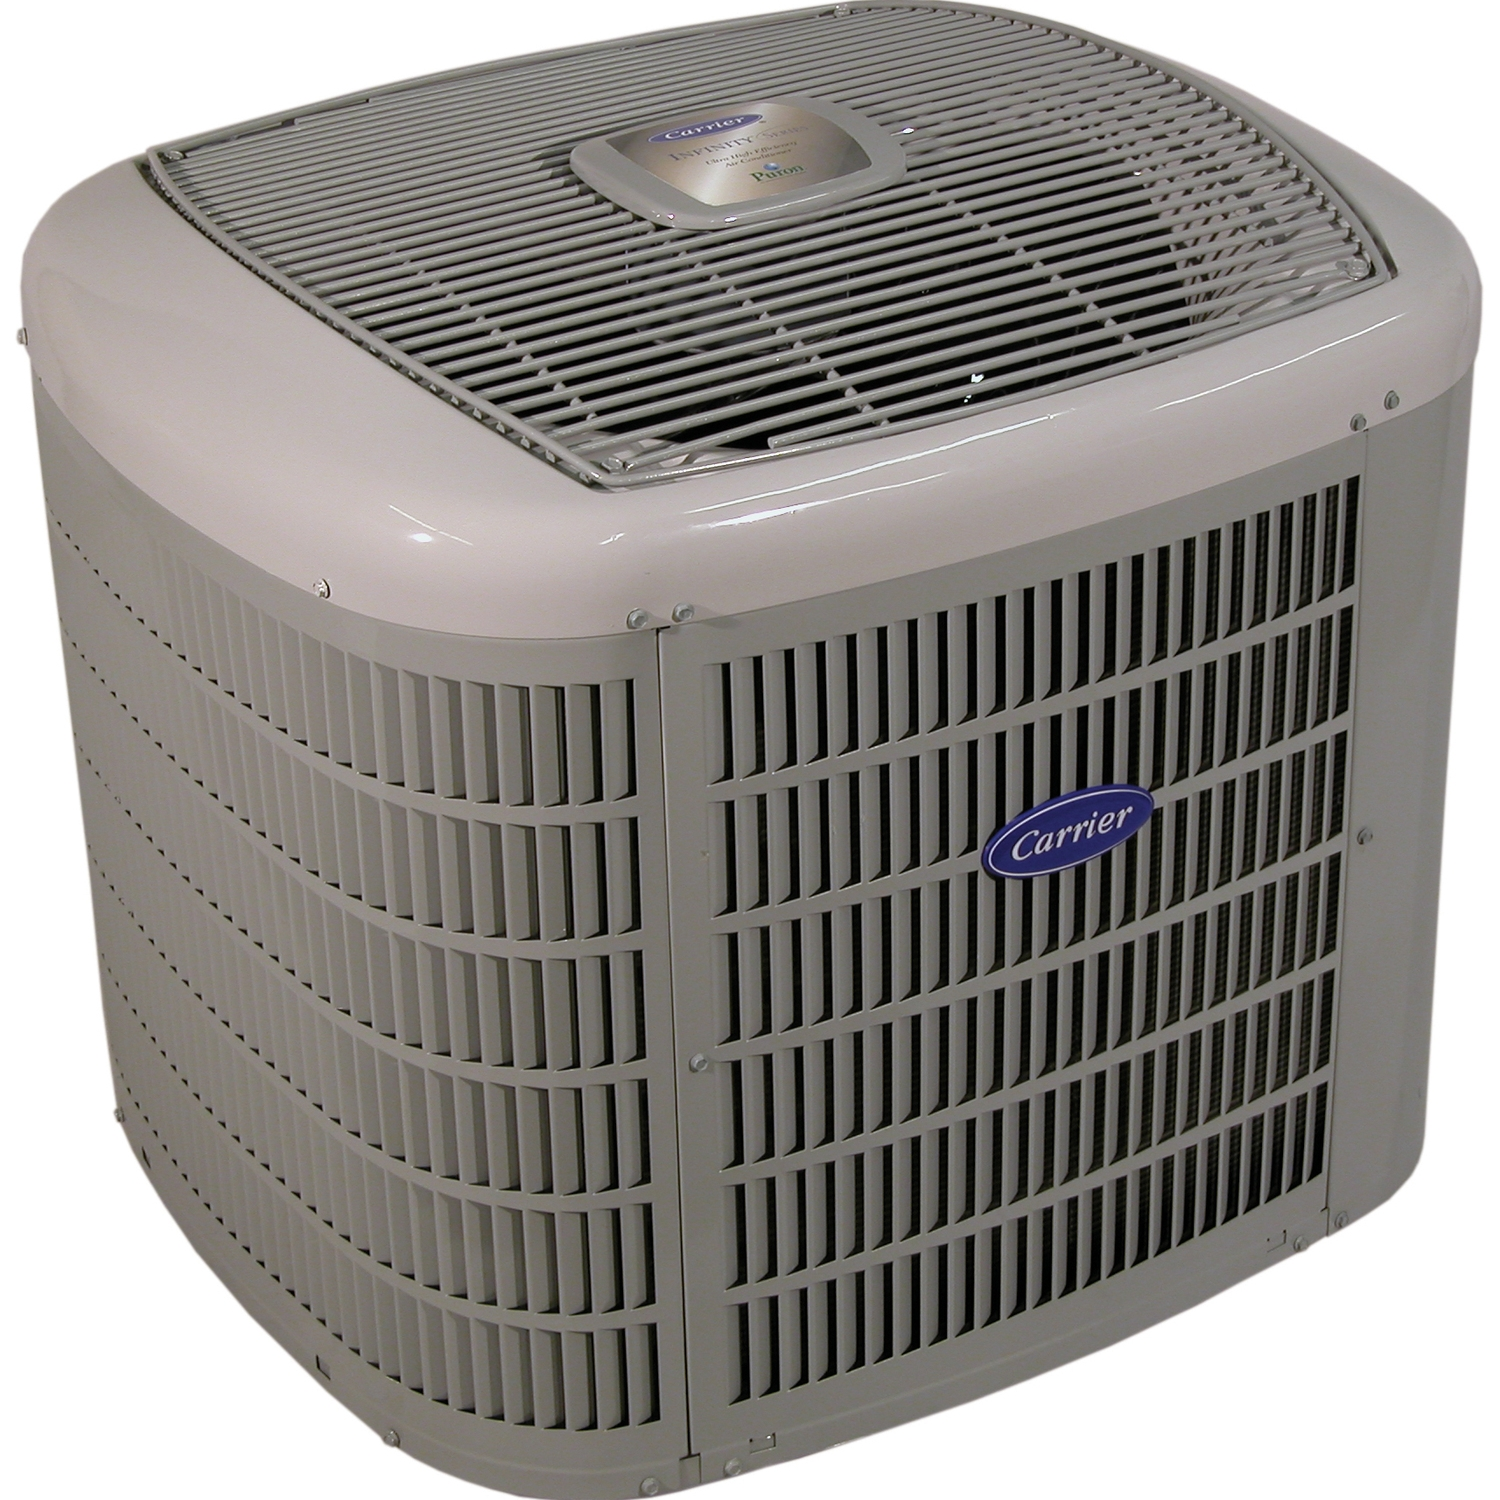 Carrier-Air-Conditioner-Indianapolis-Homesense.jpg